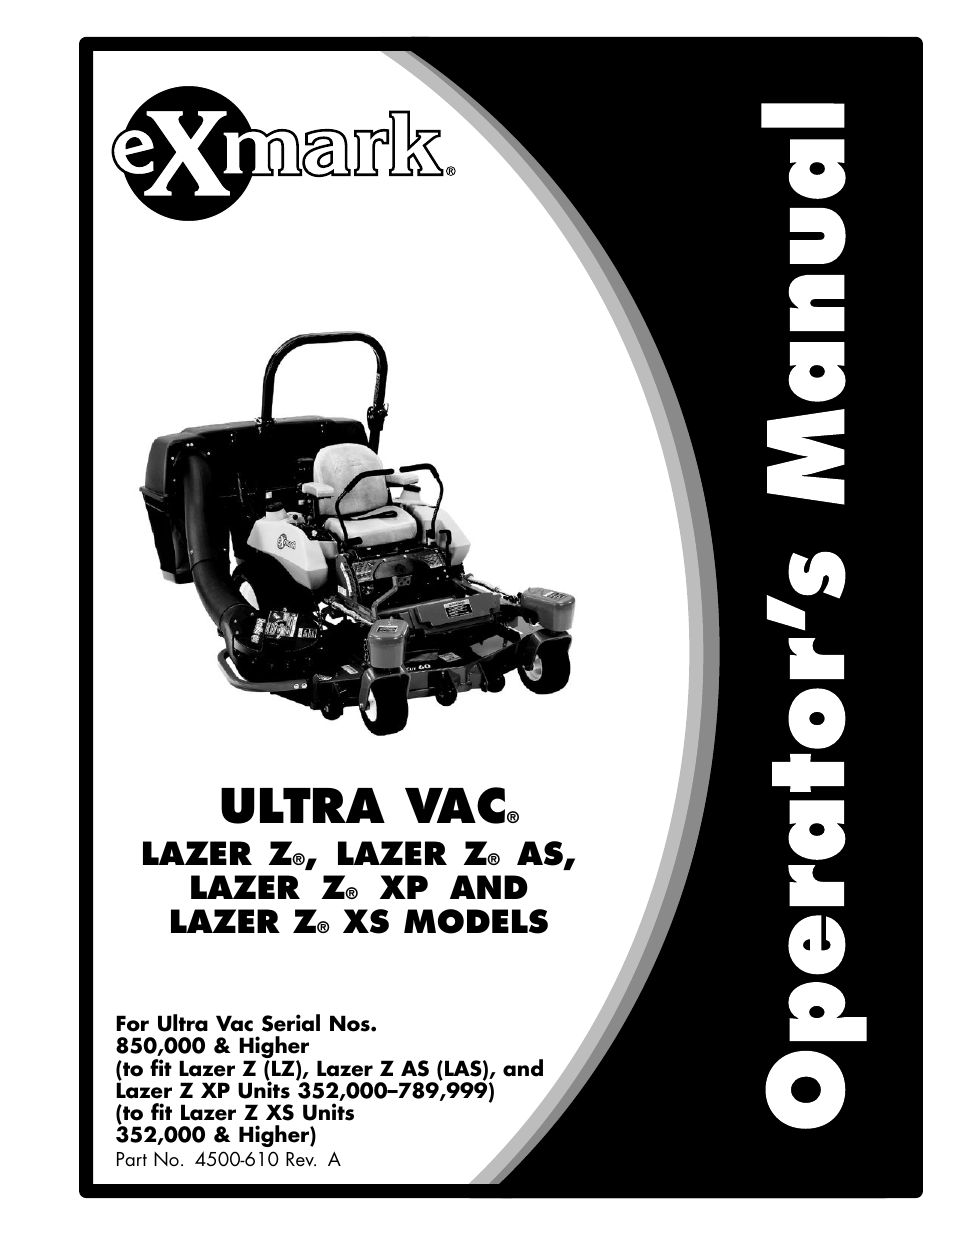 exmark lazer xp user manual 24 pages also for lazer as rh manualsdir com Top Commercial Zero Turn Mowers Exmark Rear Discharge Mower